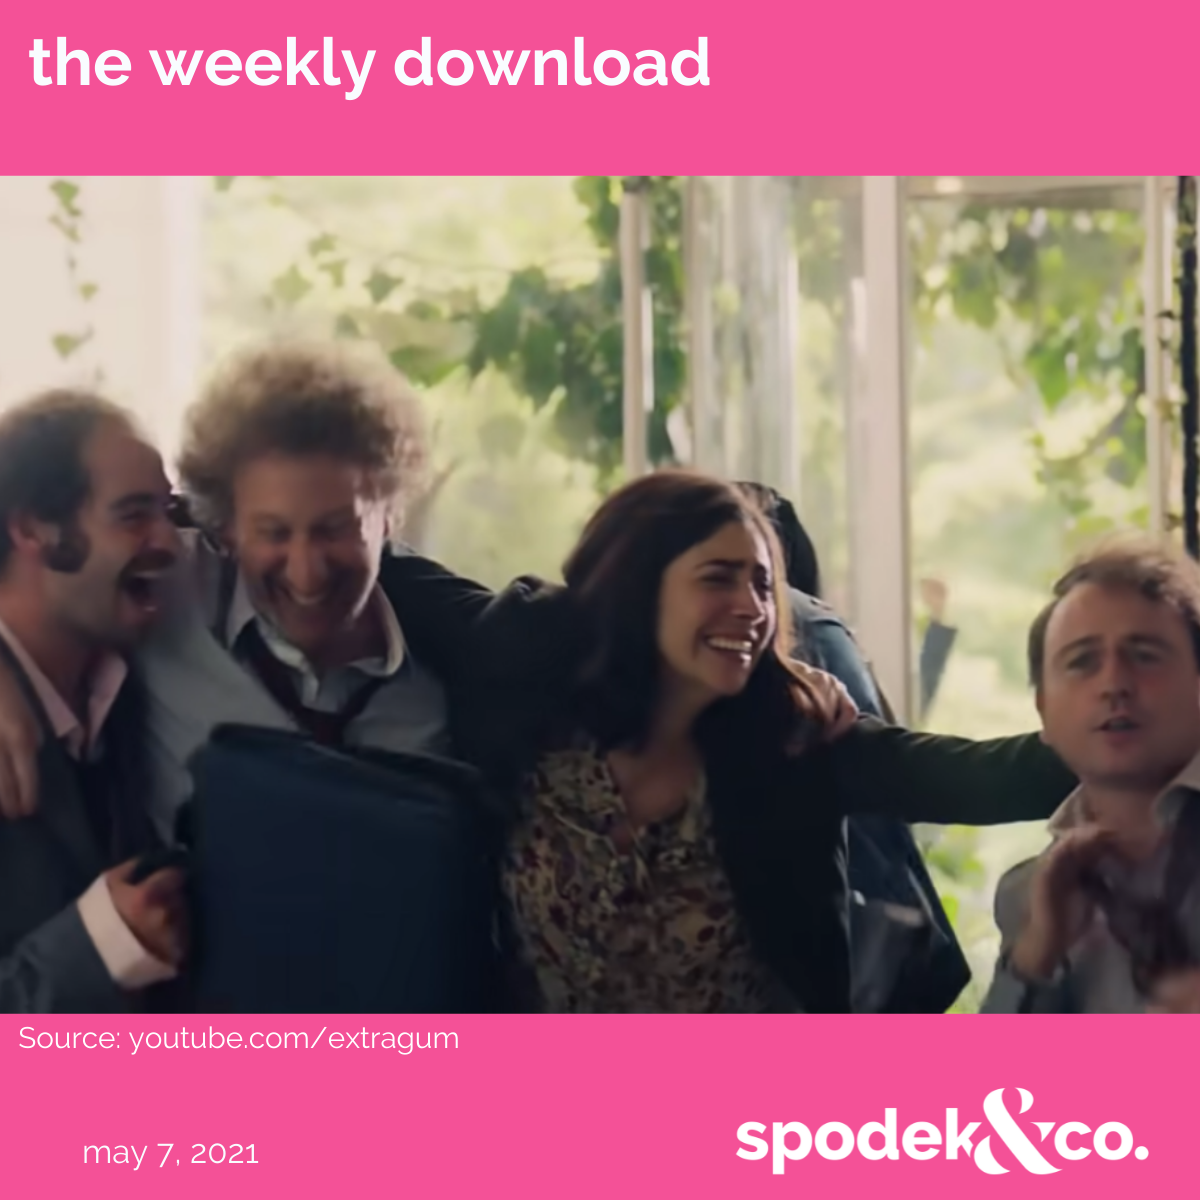 The Weekly Download – May 7, 2021